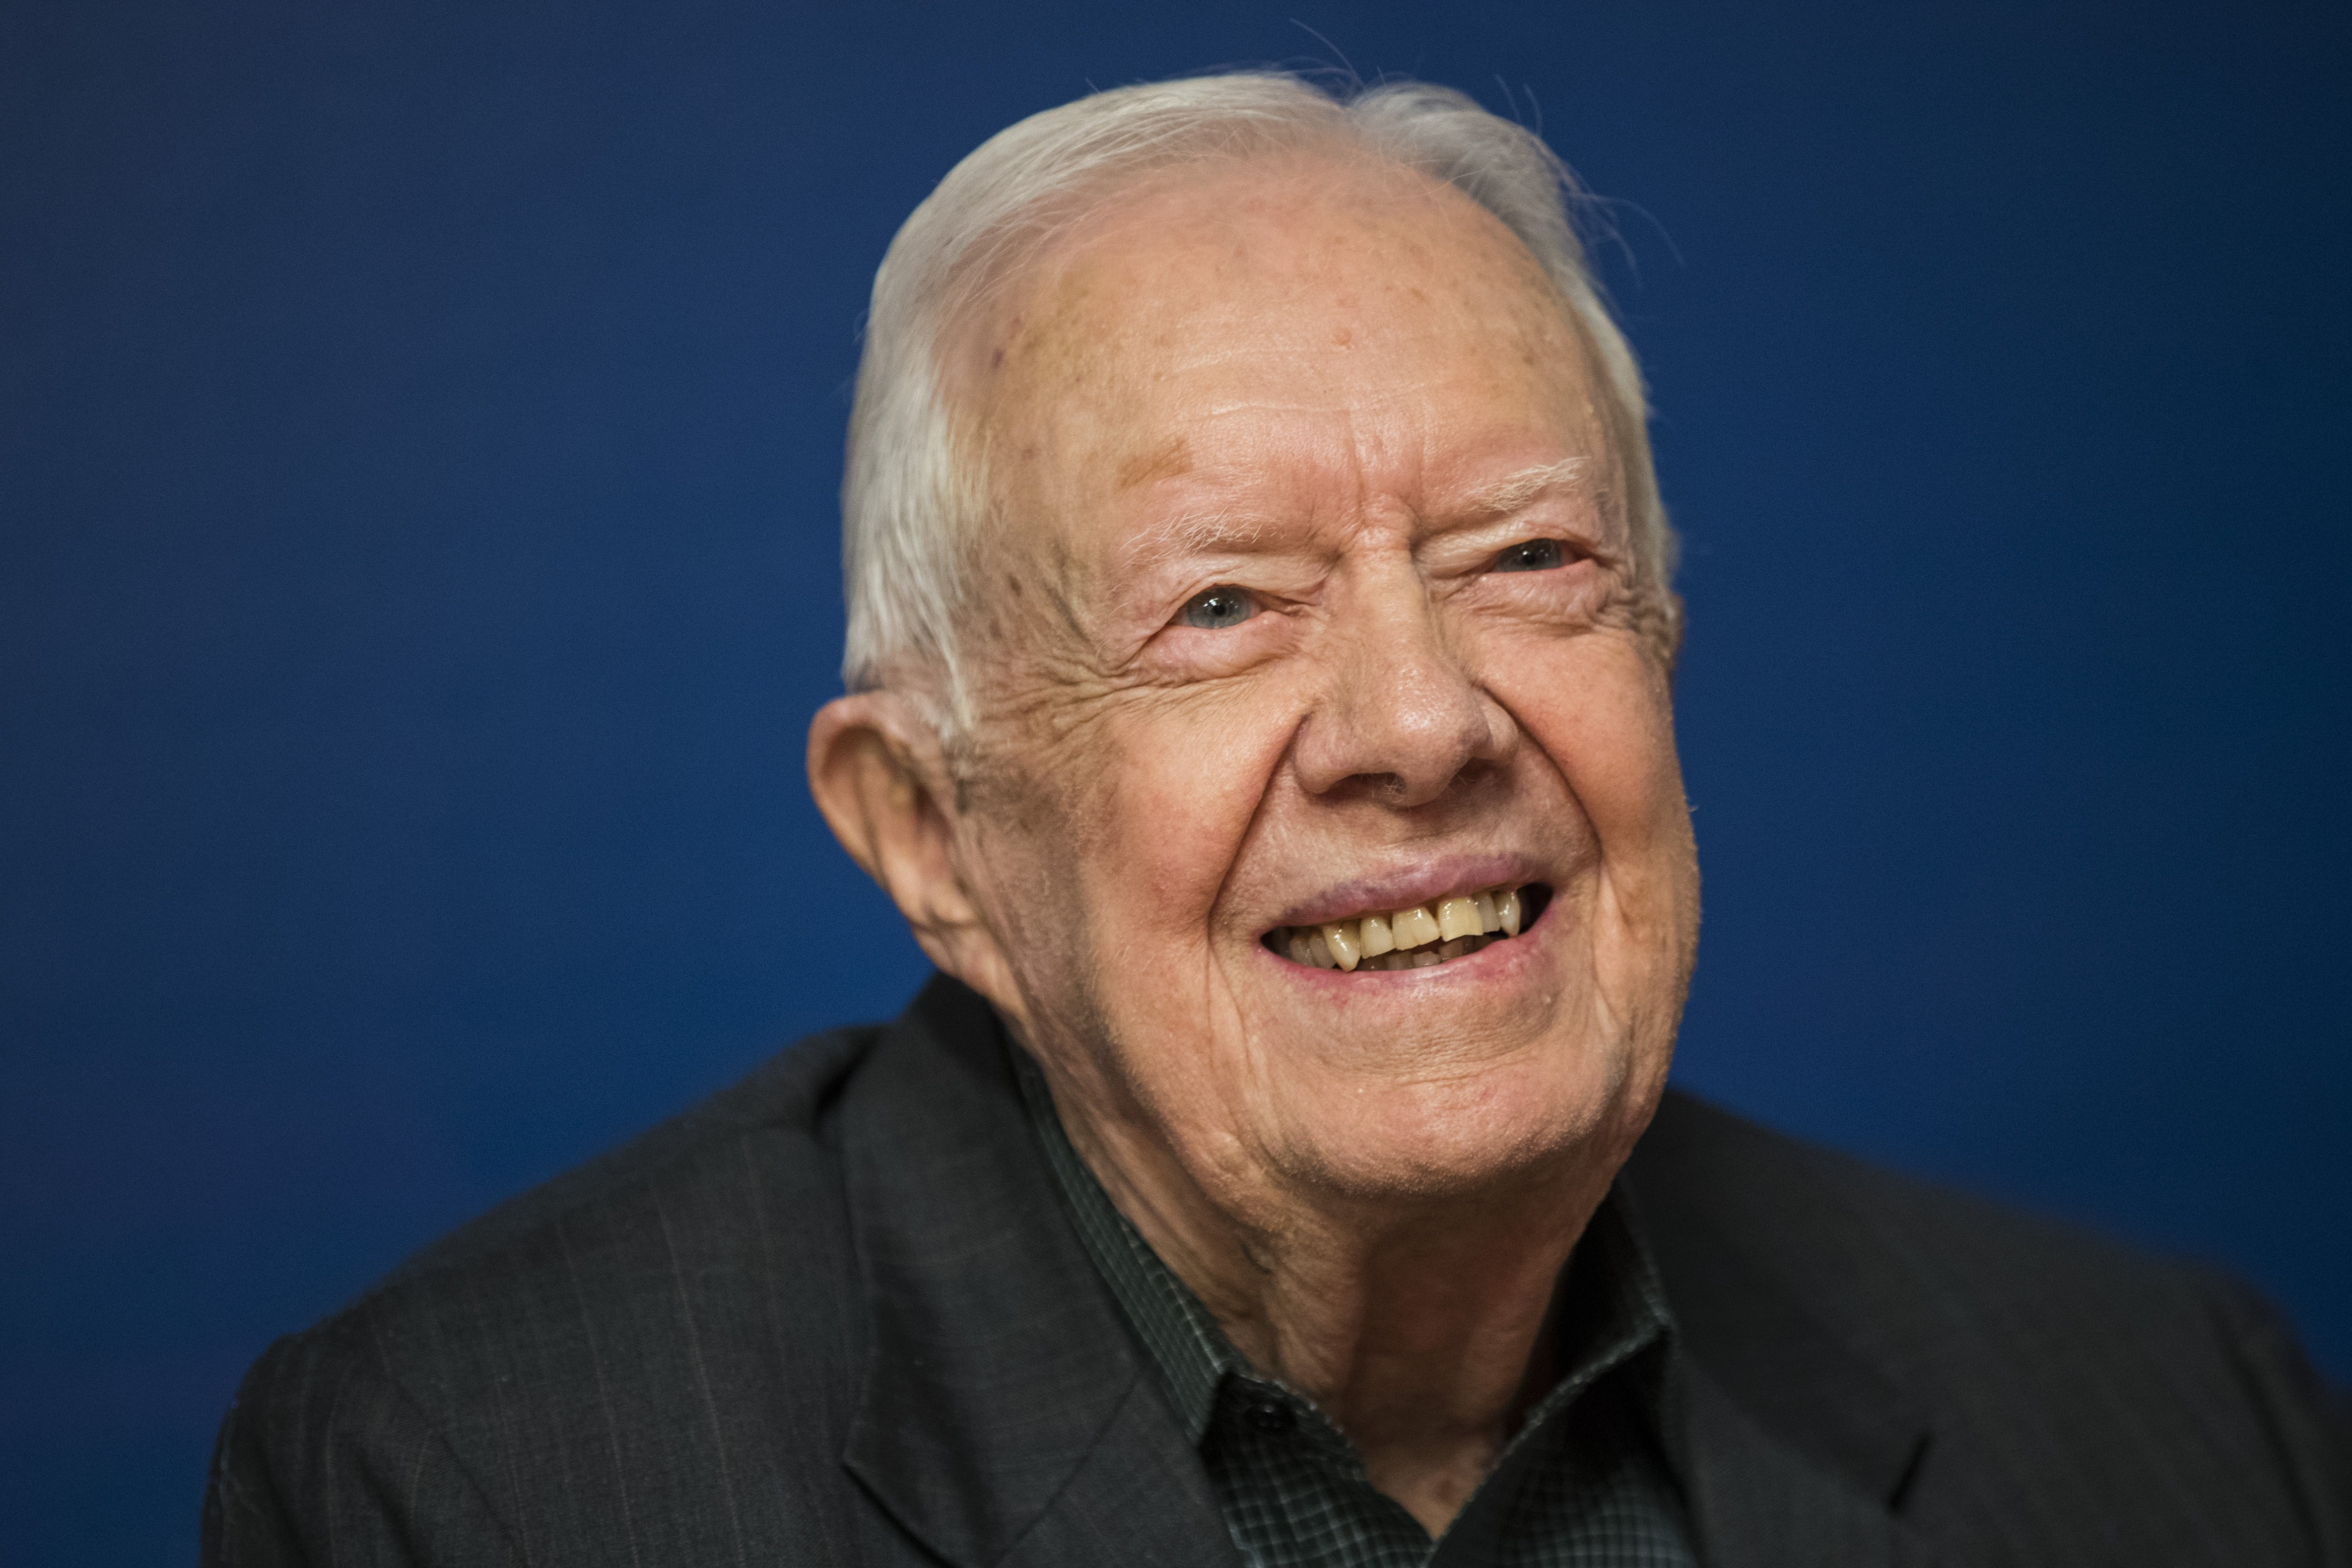 Former U.S. President Jimmy Carter smiles during a book signing event for his new book 'Faith: A Journey For All' at Barnes & Noble bookstore in Midtown Manhattan, March 26, 2018, in New York City. | Source: Getty Images.